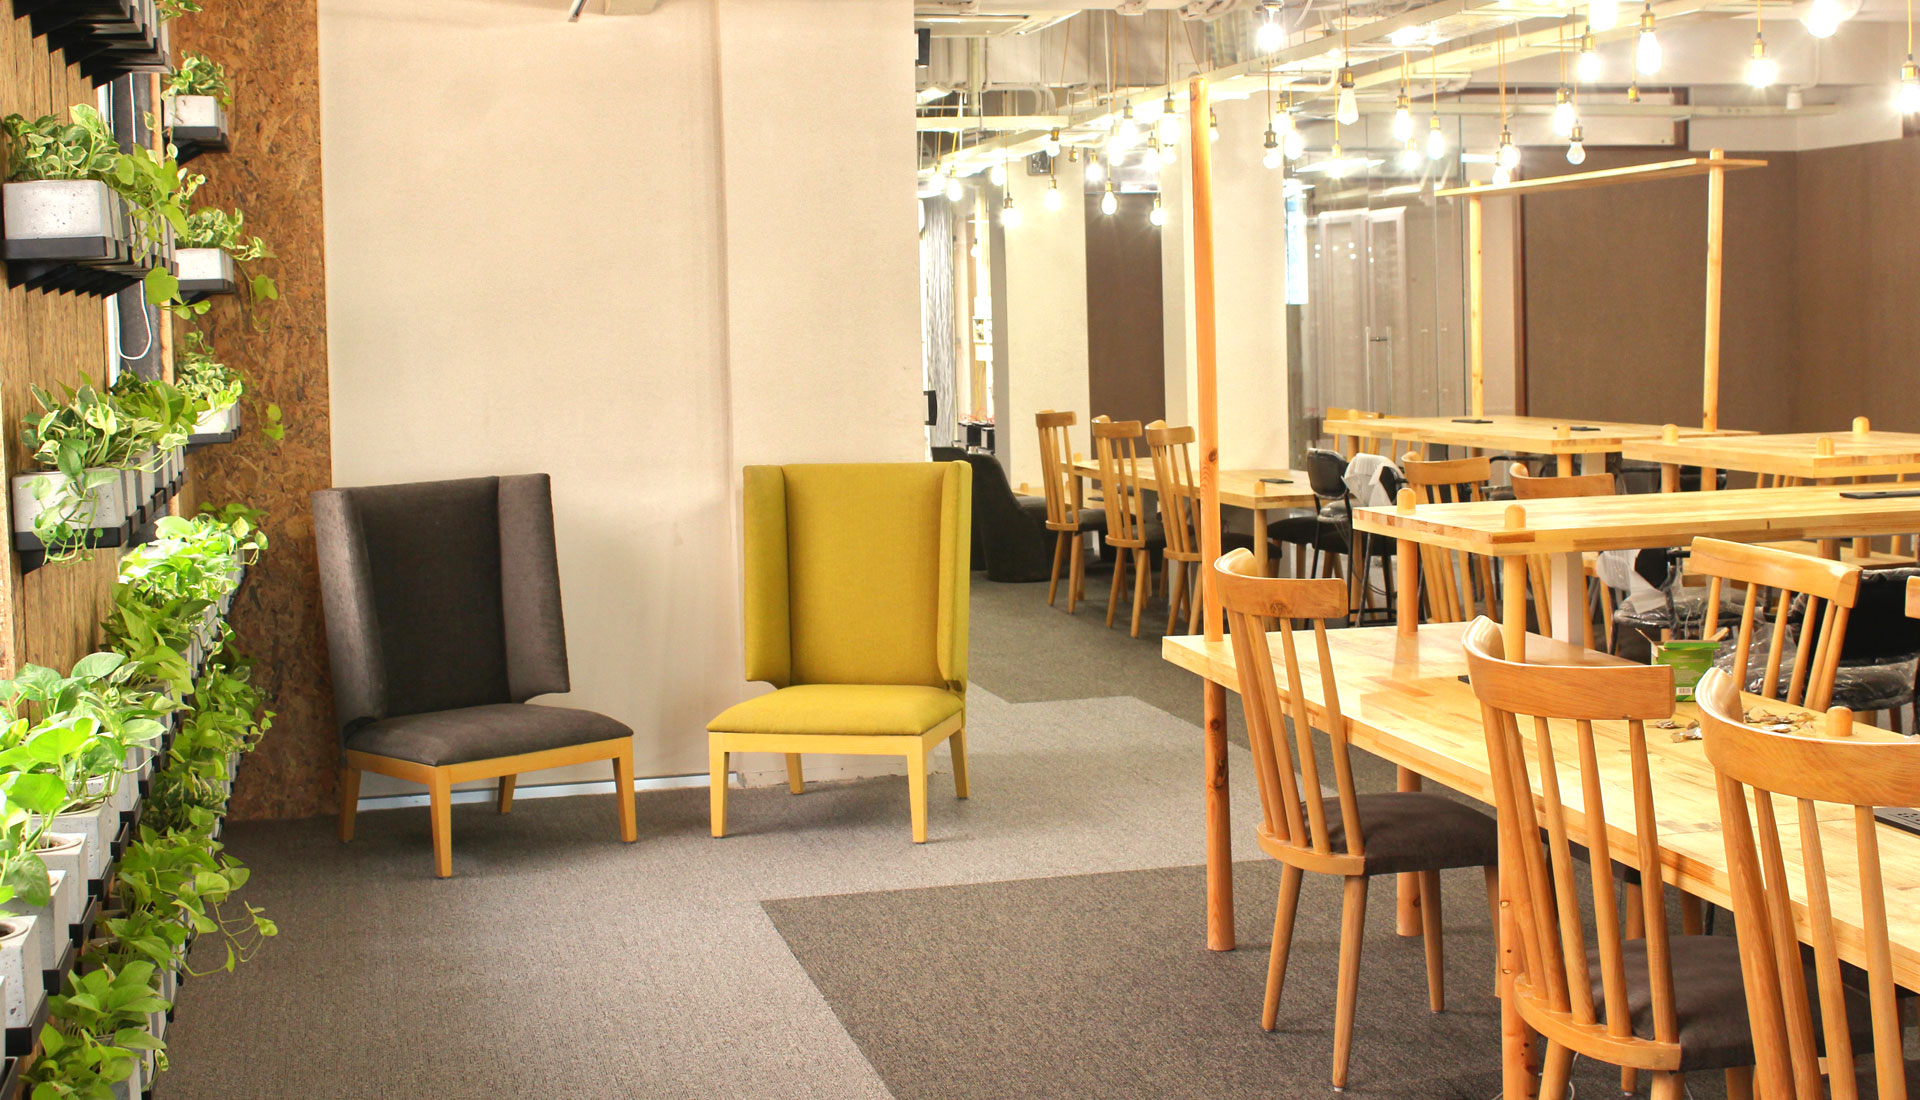 ten-reasons-to-join-a-co-working-space-in-the-new-year